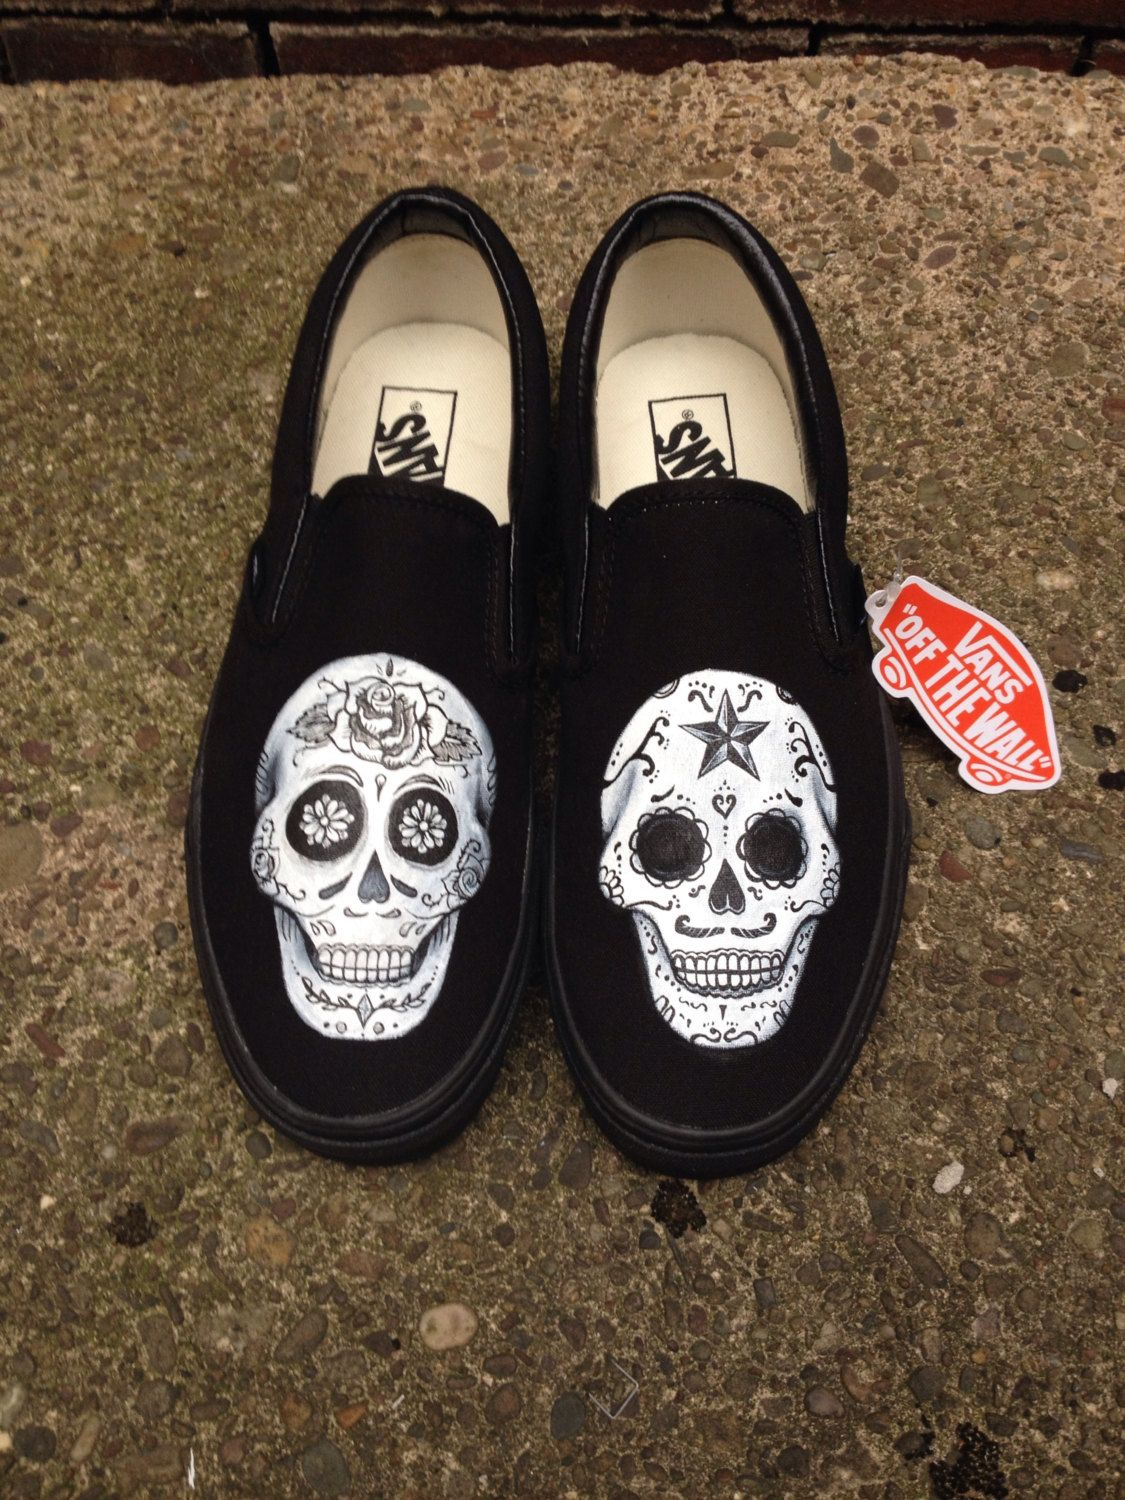 74df718d57 Day of the dead hand painted shoes. Dia de los muertos. Sugar skull shoes.  Halloween shoes by HJArtistry on Etsy